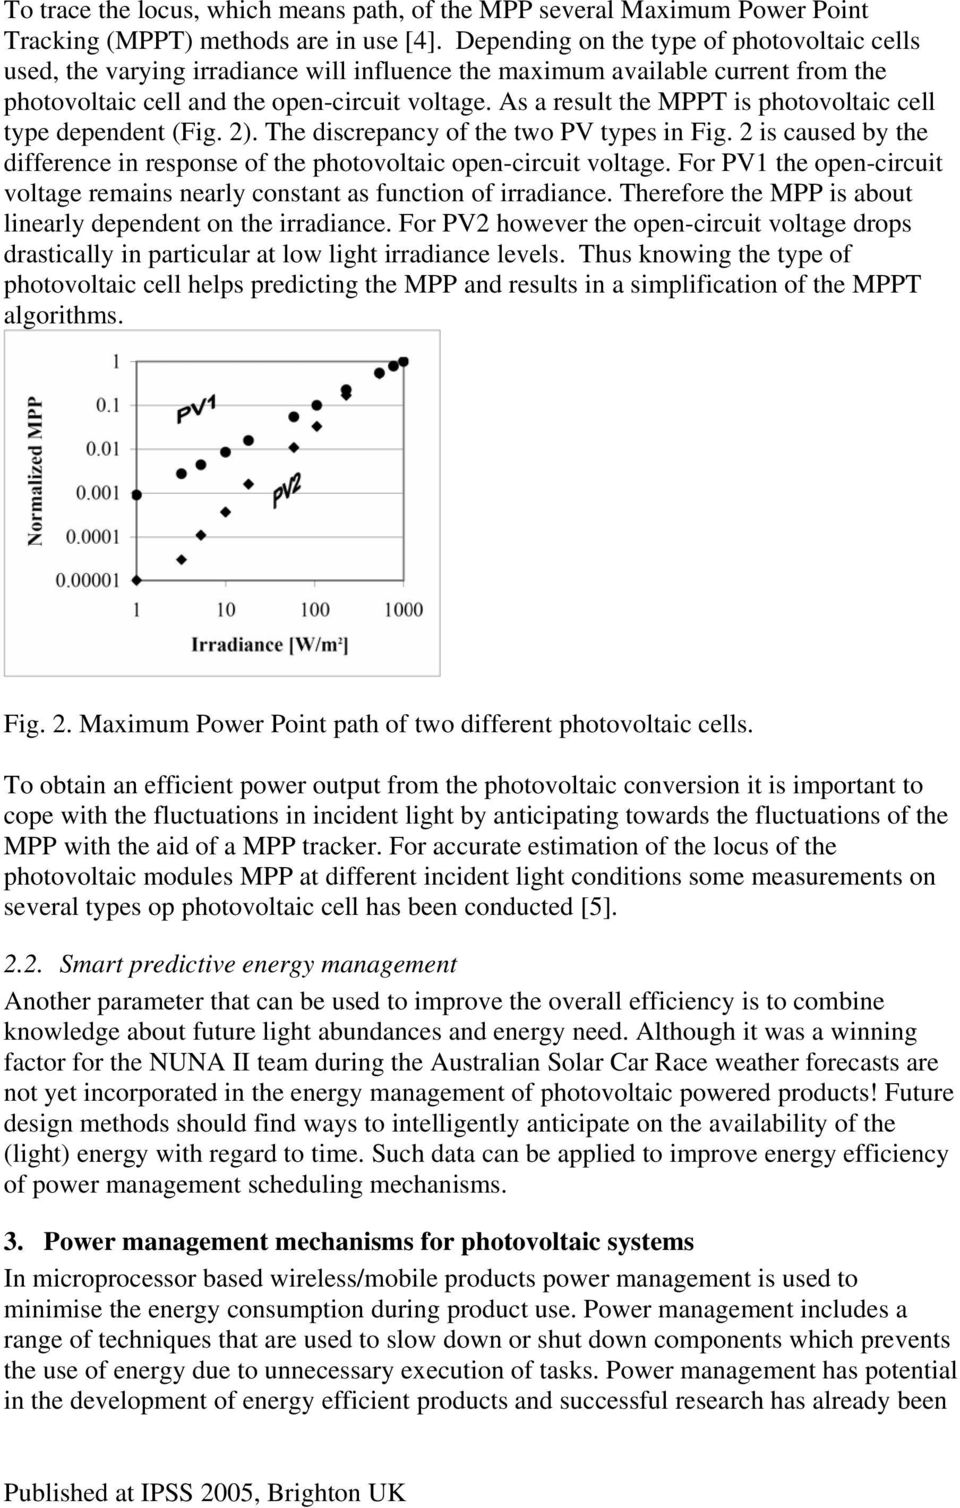 As a result the MPPT is photovoltaic cell type dependent (Fig. 2). The discrepancy of the two PV types in Fig. 2 is caused by the difference in response of the photovoltaic open-circuit voltage.